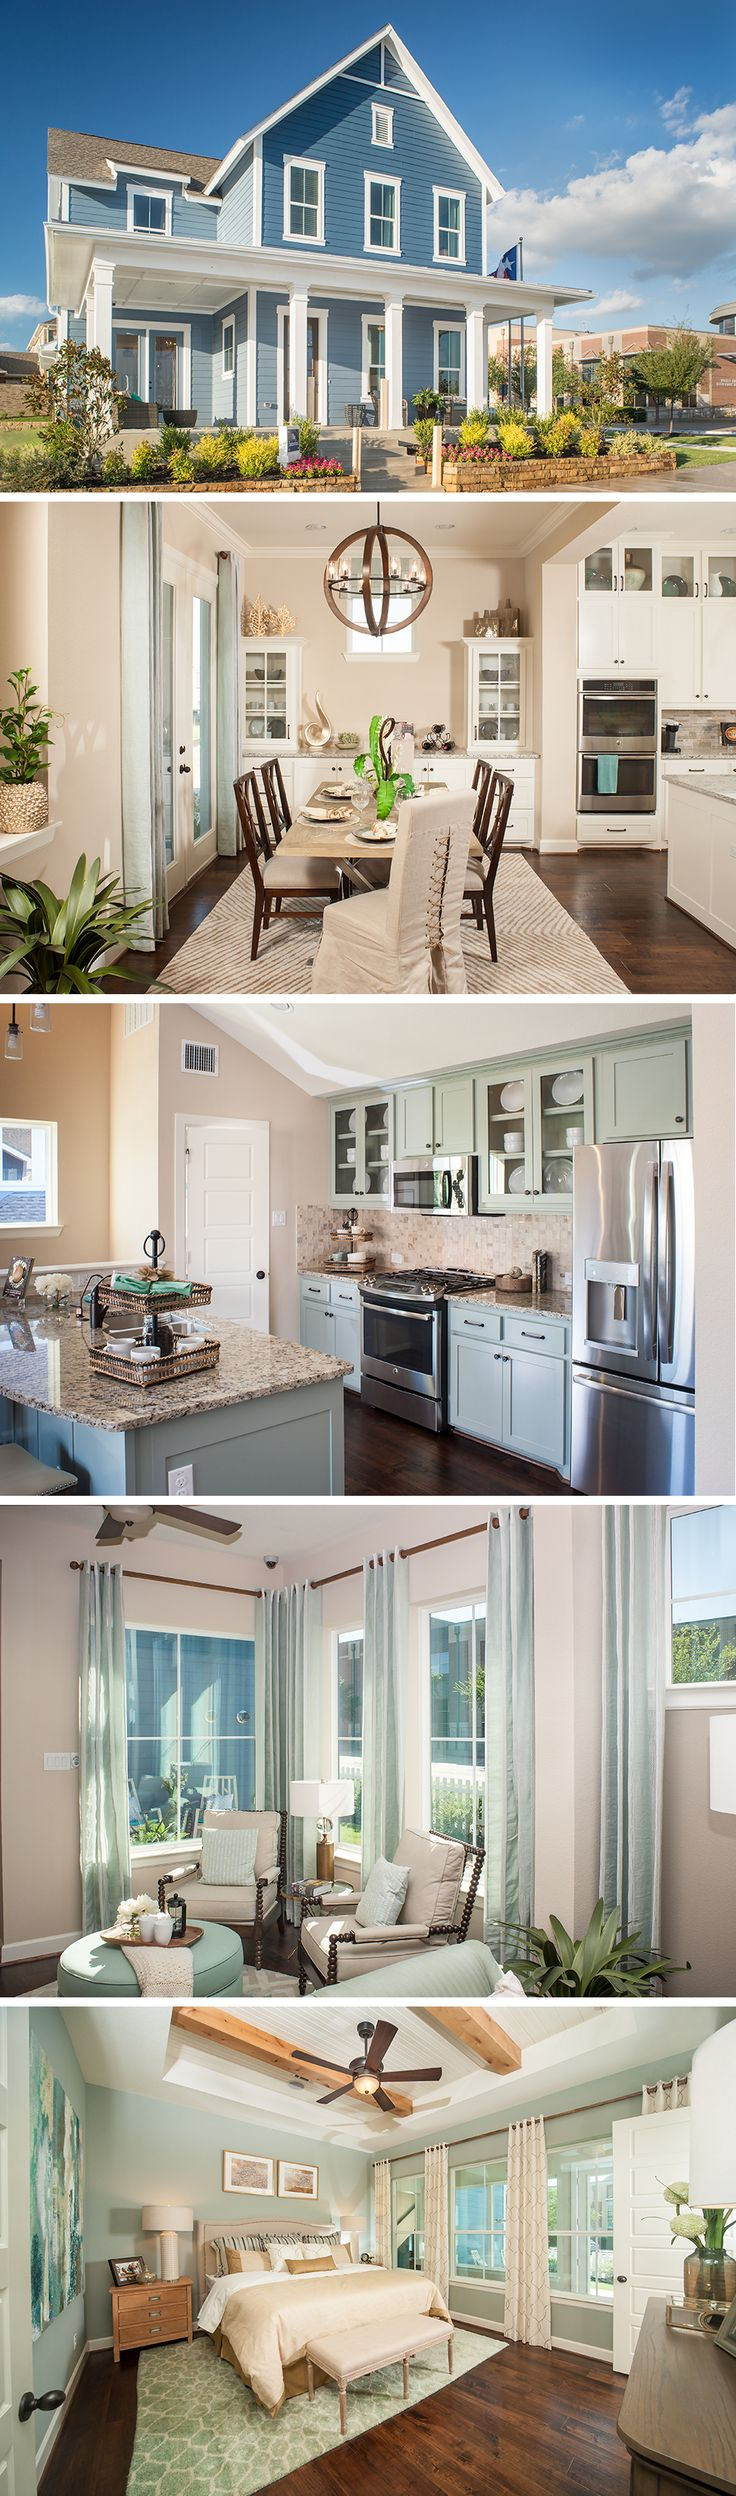 .The  Eastmoreland by David Weekley Homes in Hometown Cottage is a 4 to 5 bedroom home that features a large open kitchen and family room, a 3 car garage and a large owners retreat. Custom home options include a fireplace in the family room, a sunroom and a larger shower in the owners retreat.